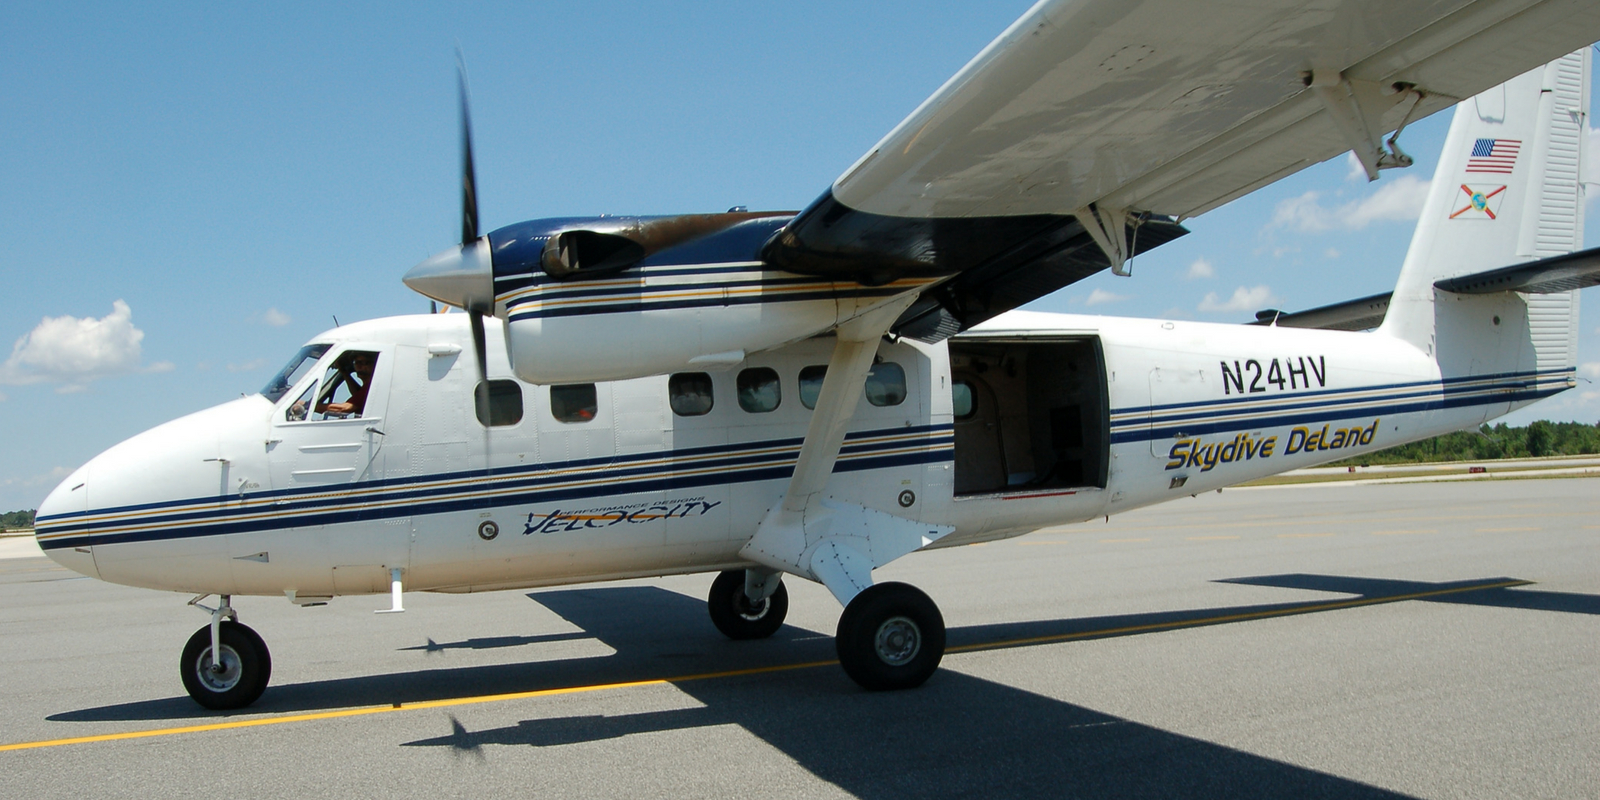 Skydive DeLand's Twin Otter DHC-6 aircraft